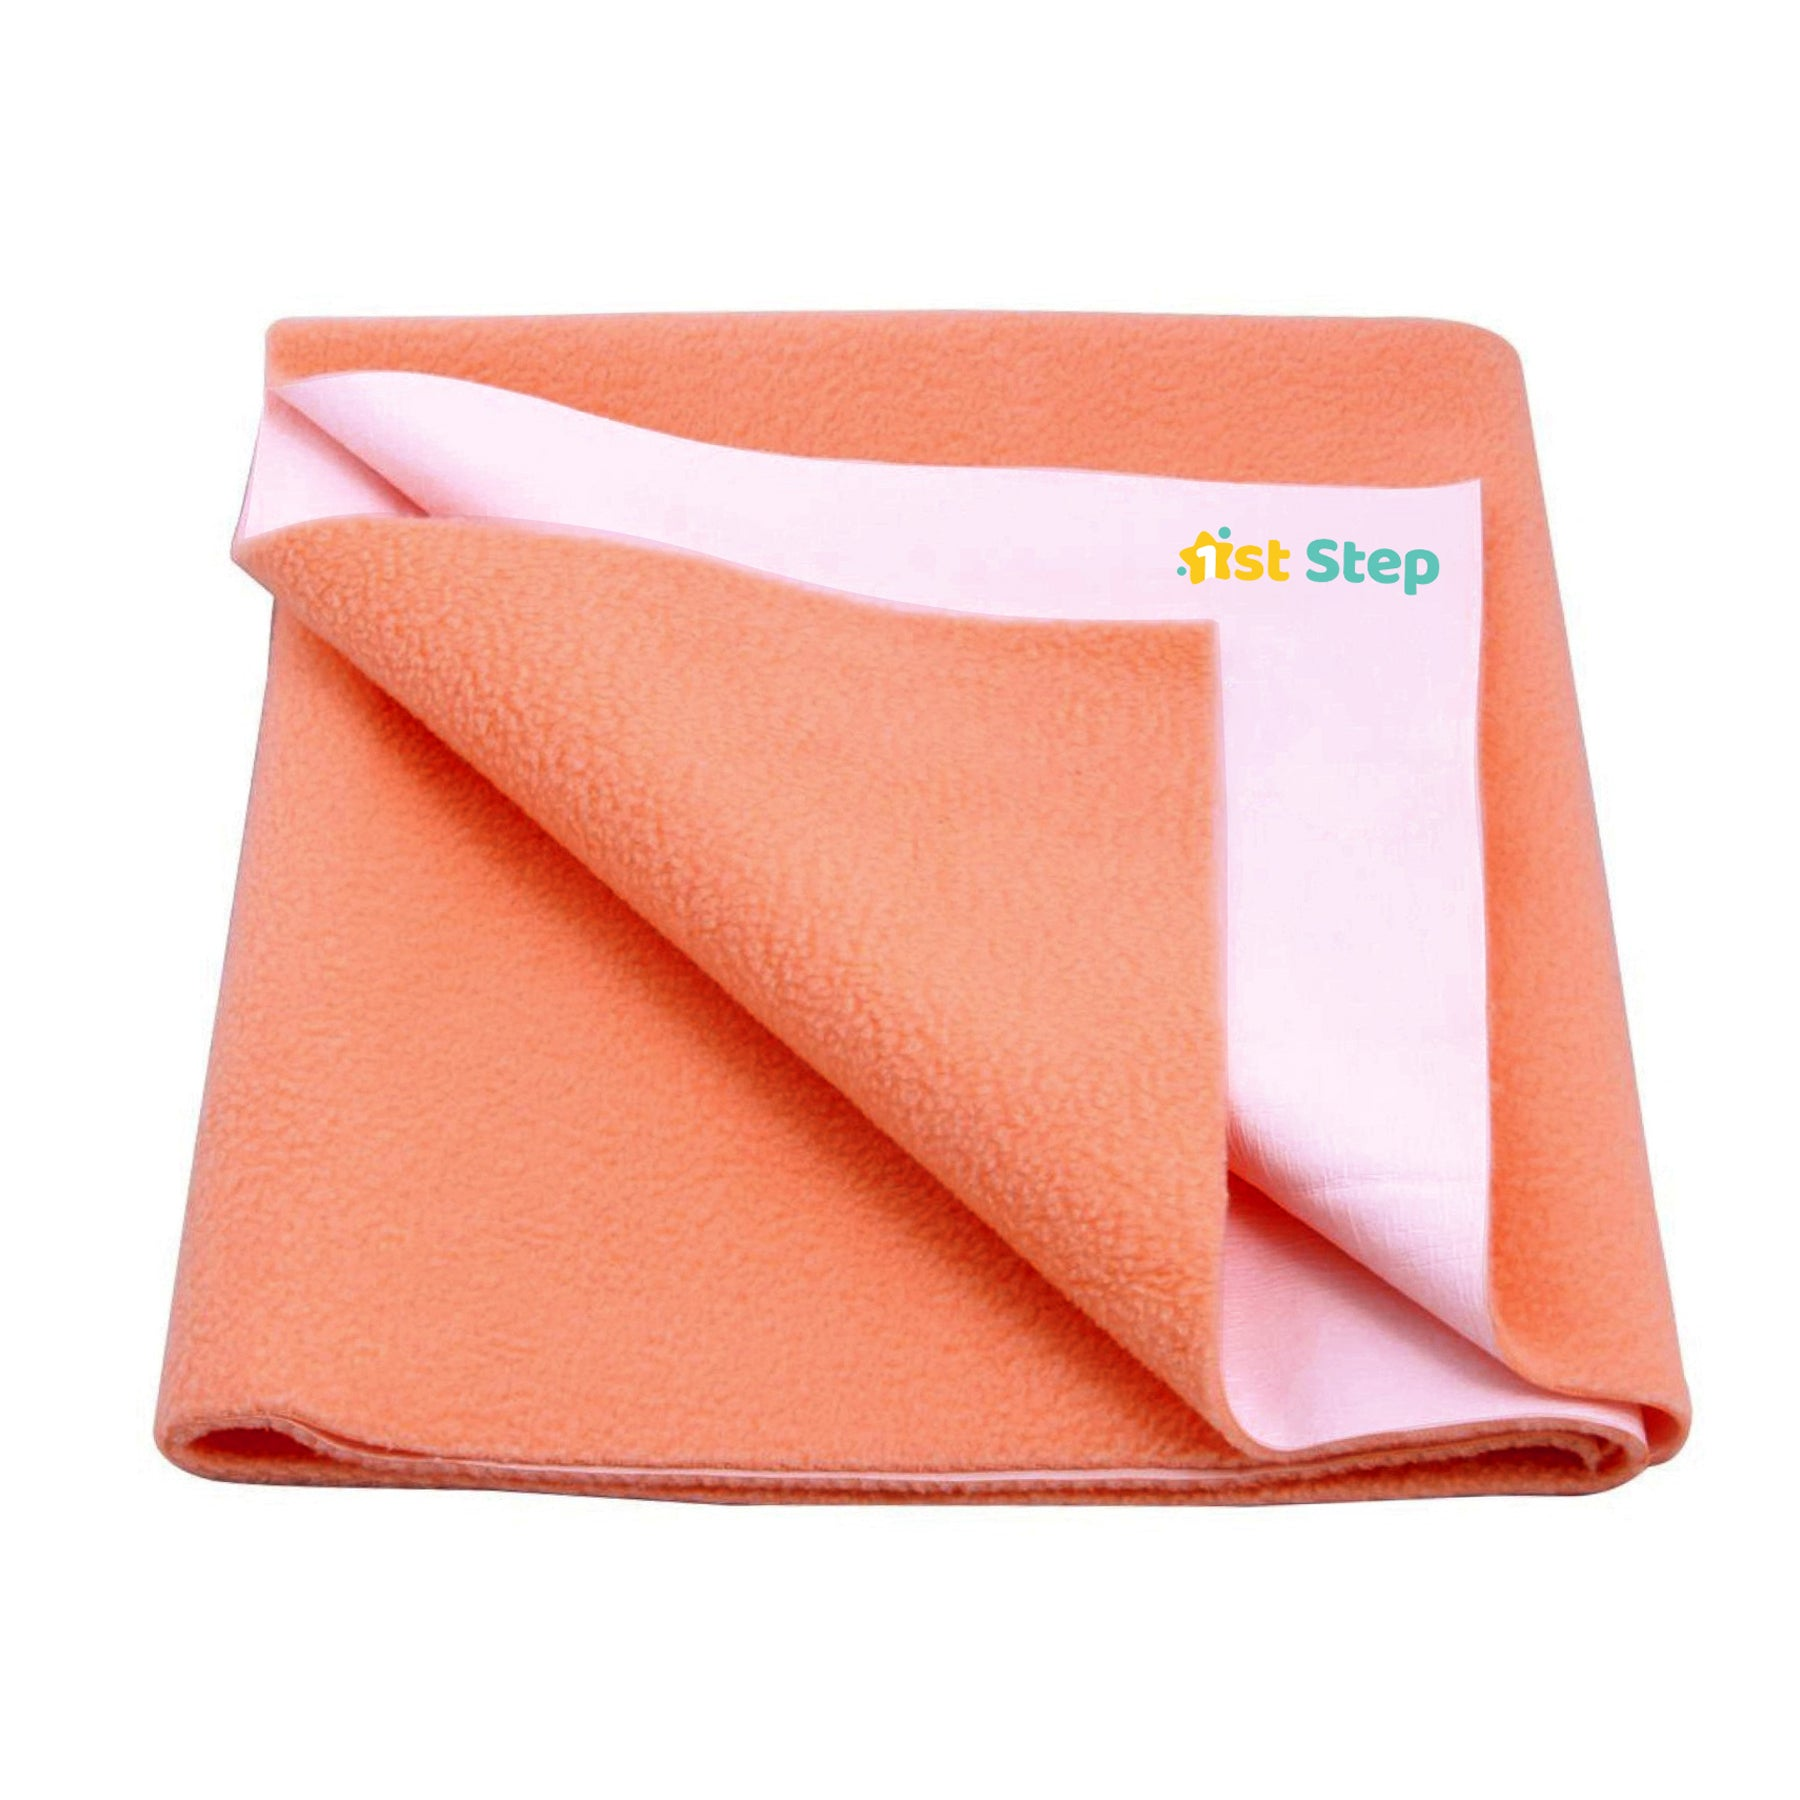 1st Step Supa - Dry Extra Absorbent Dry Sheet/Bed Protector/Mattress Protector (Orange, Large(100 * 140 cm))